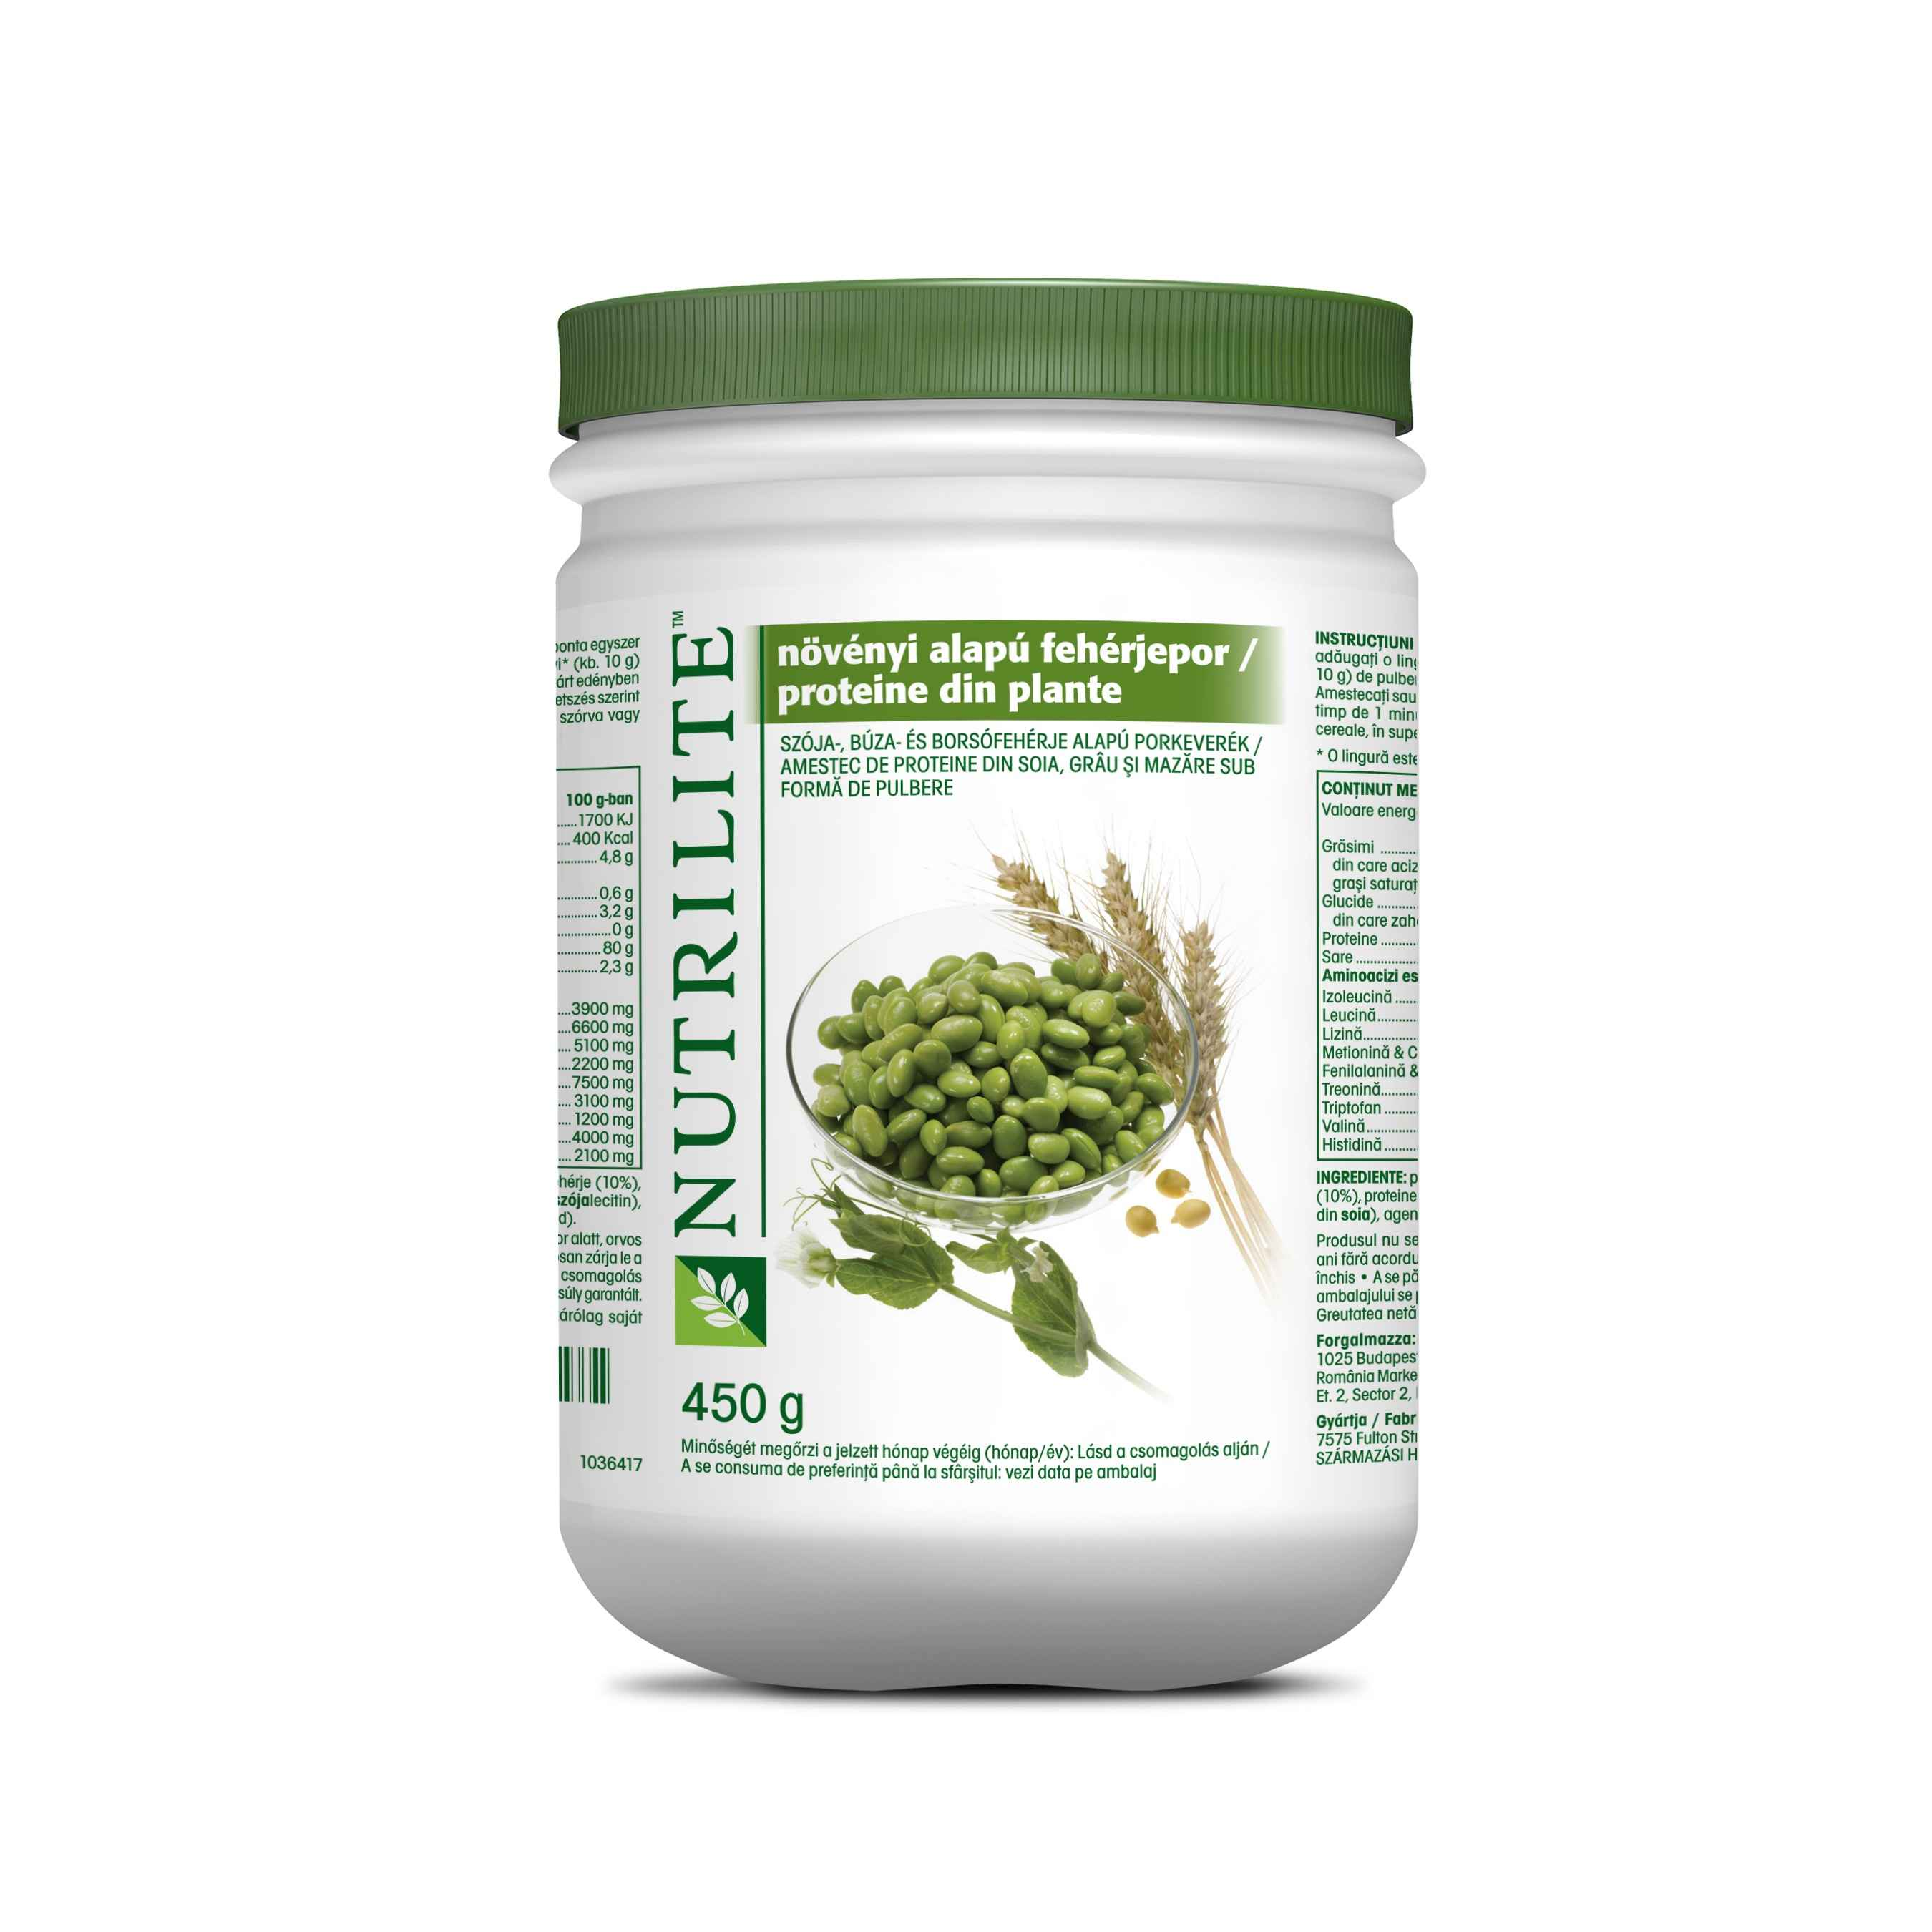 Product mockup/packshot of All Plant Protein Powder 110415